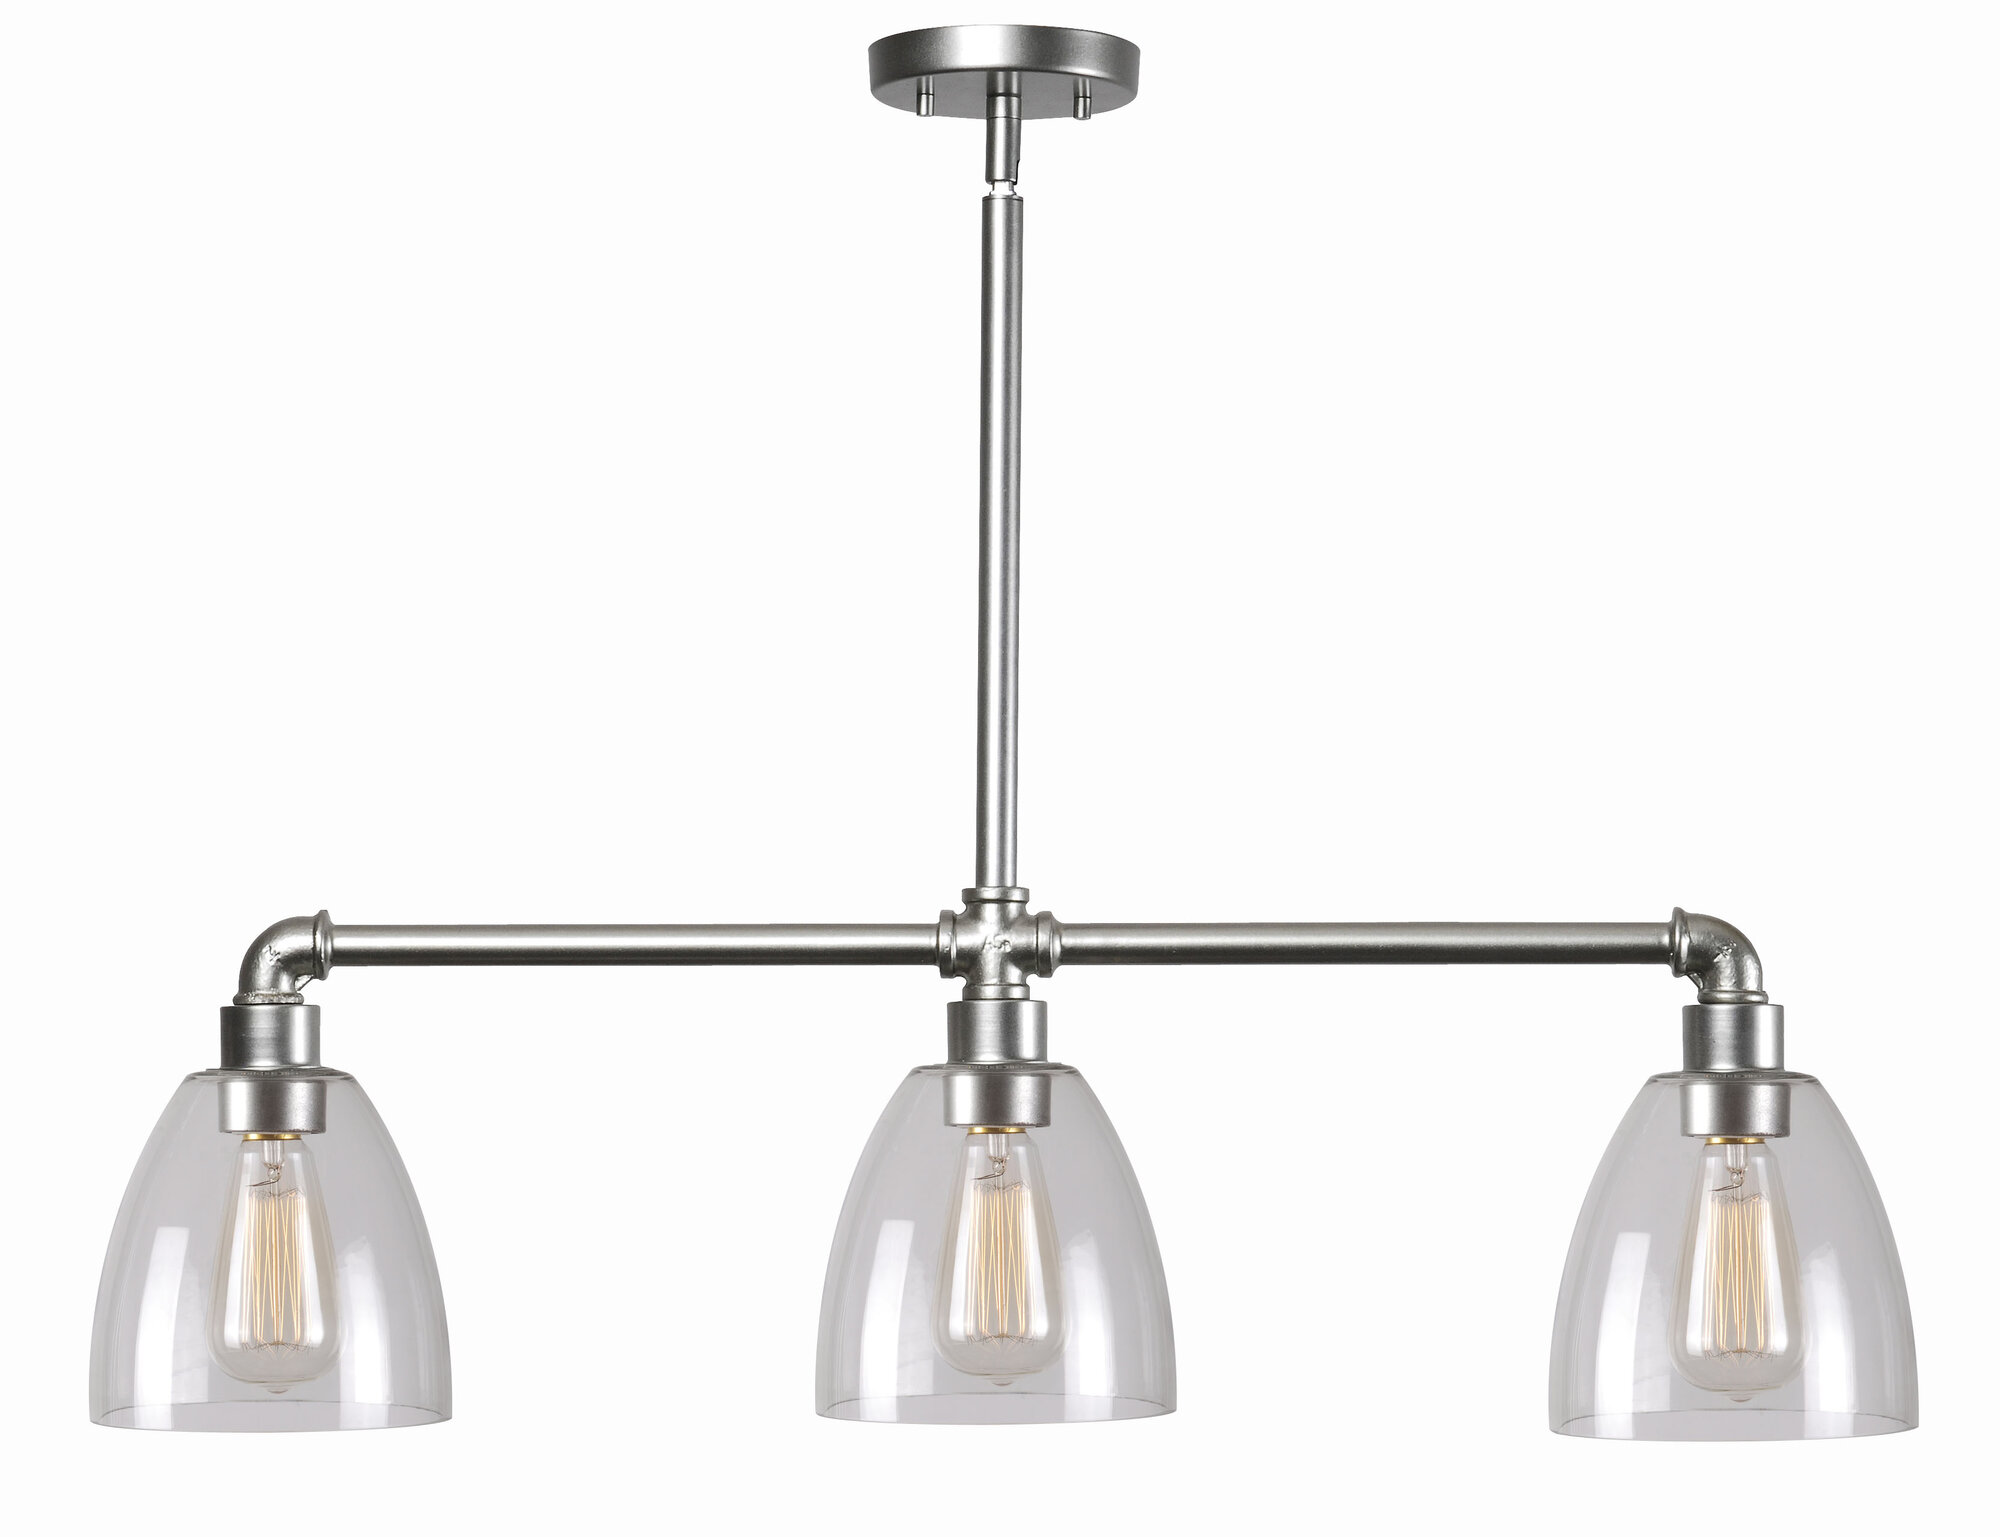 Wildon home industrial fitter 3 light kitchen island pendant ebay - Industrial lighting fixtures for kitchen ...